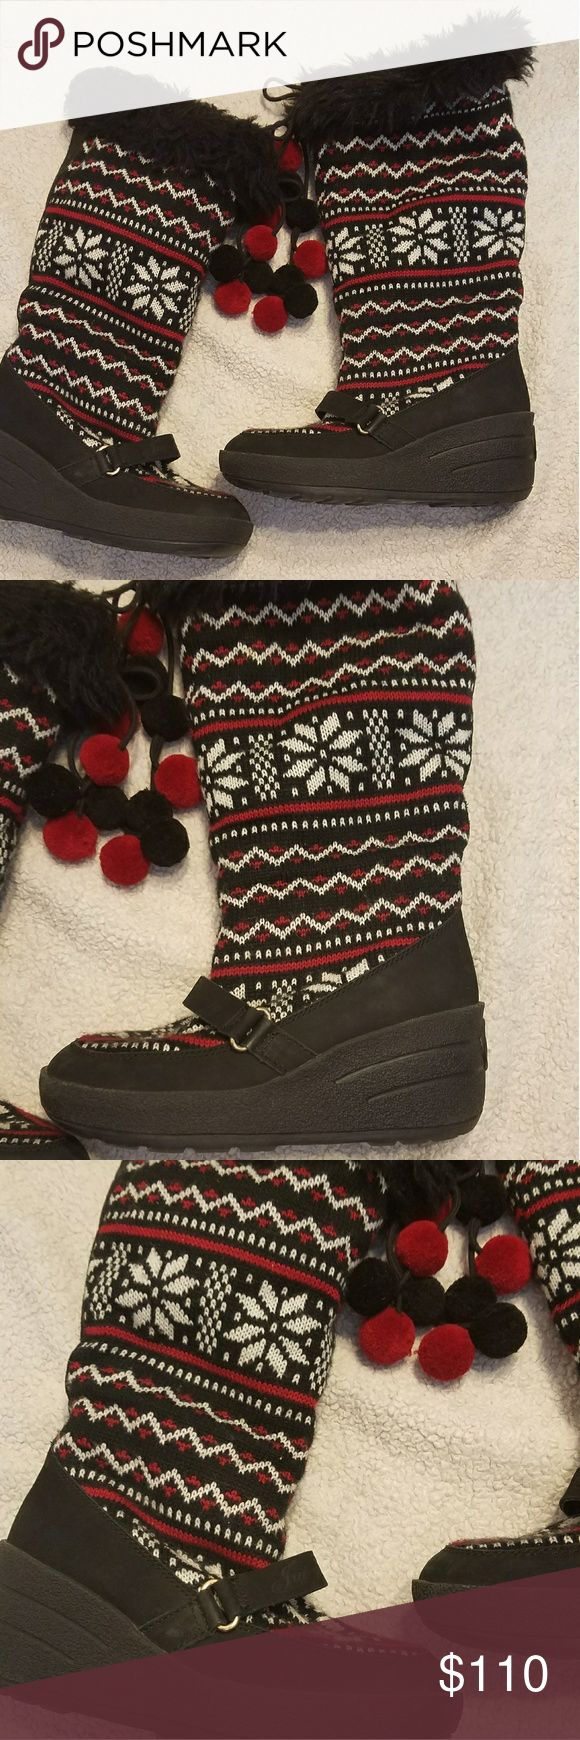 """Like new Juicy Couture wedged tall fur boots sz 8 Absolutely gorgeous design black and red 2.5"""" wedge #h Juicy Couture Shoes Winter & Rain Boots"""